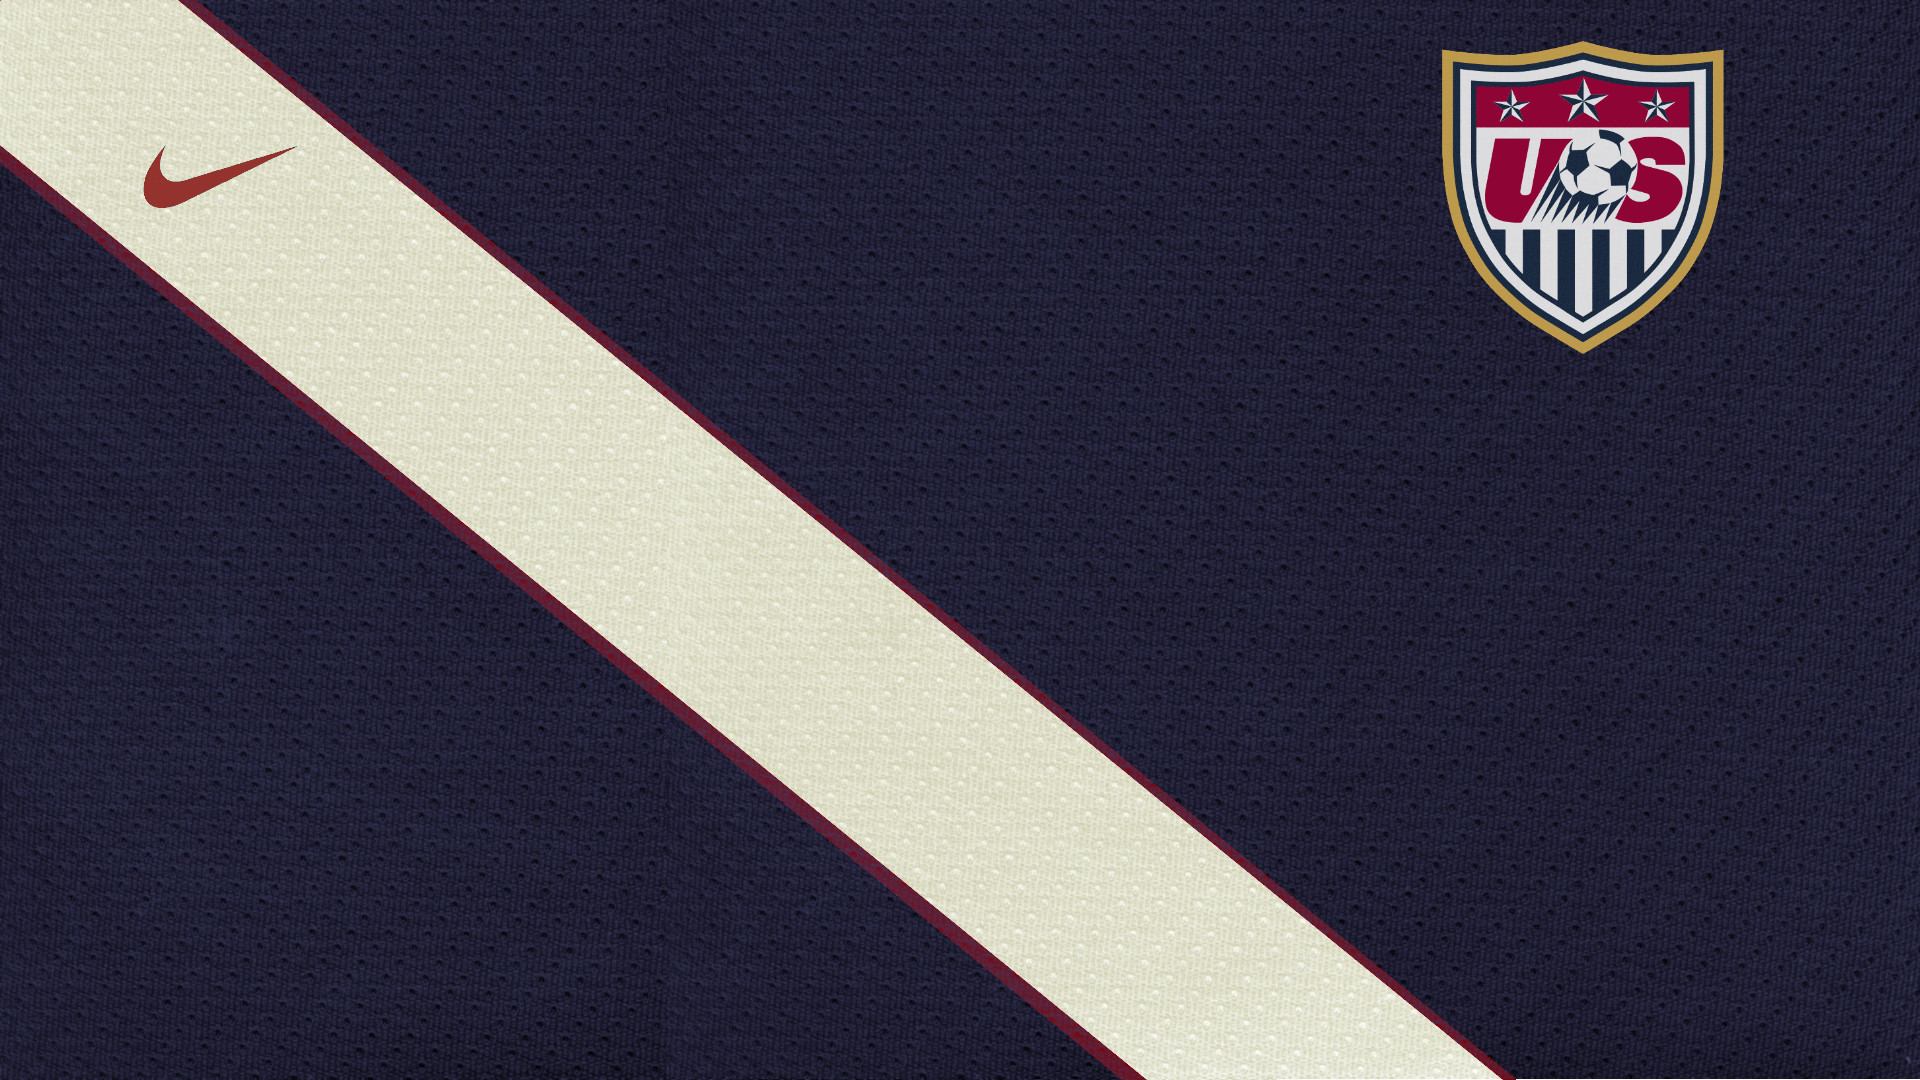 1920x1080 Wallpapers 2010 USMNT away jersey